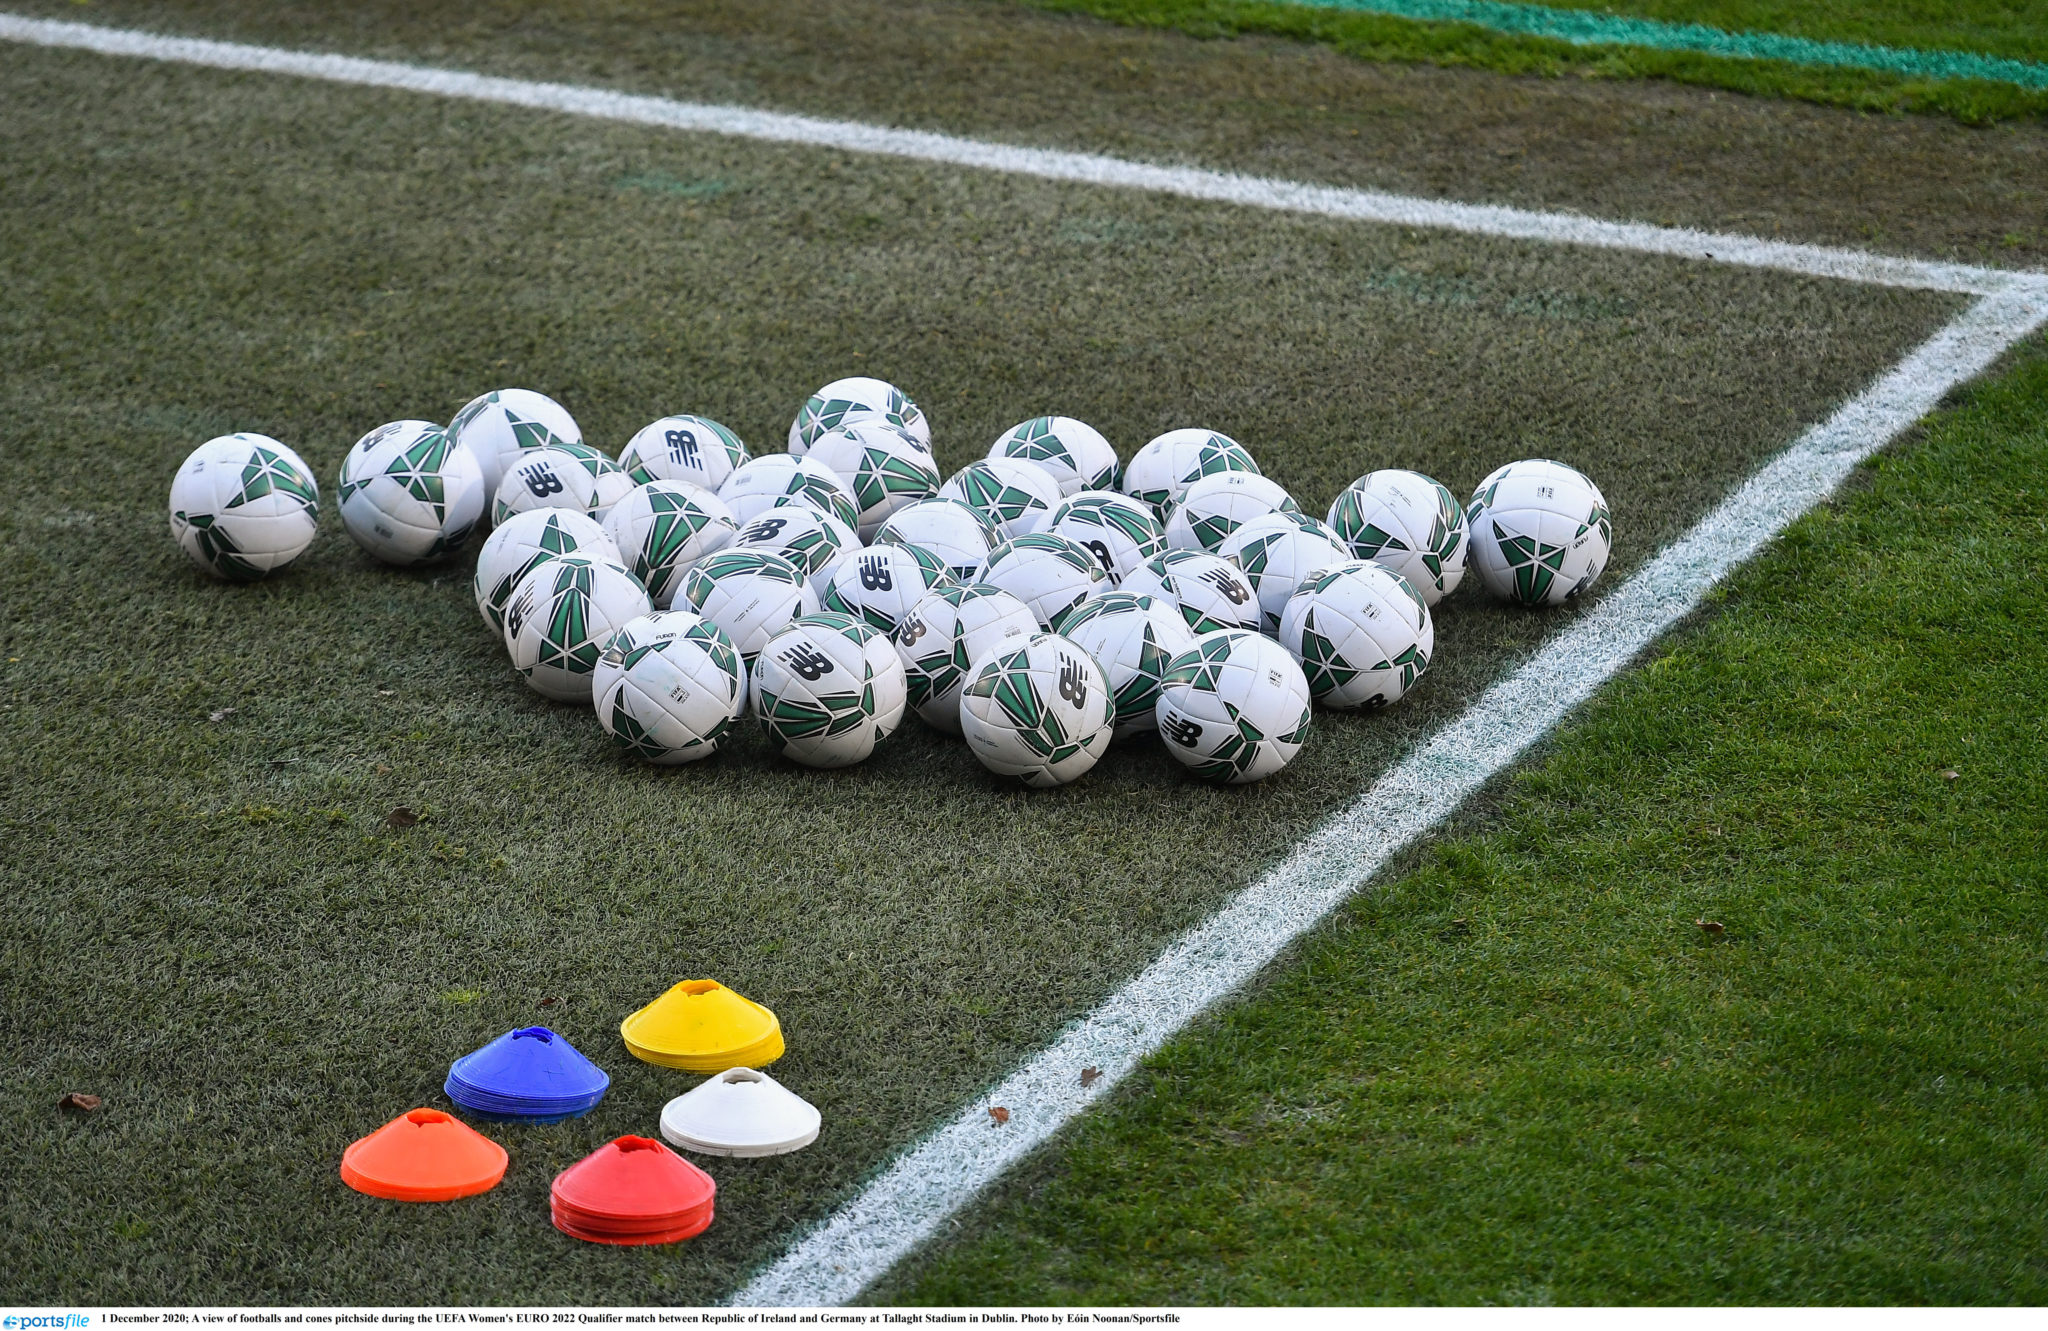 Brexit will have a huge impact on Irish football